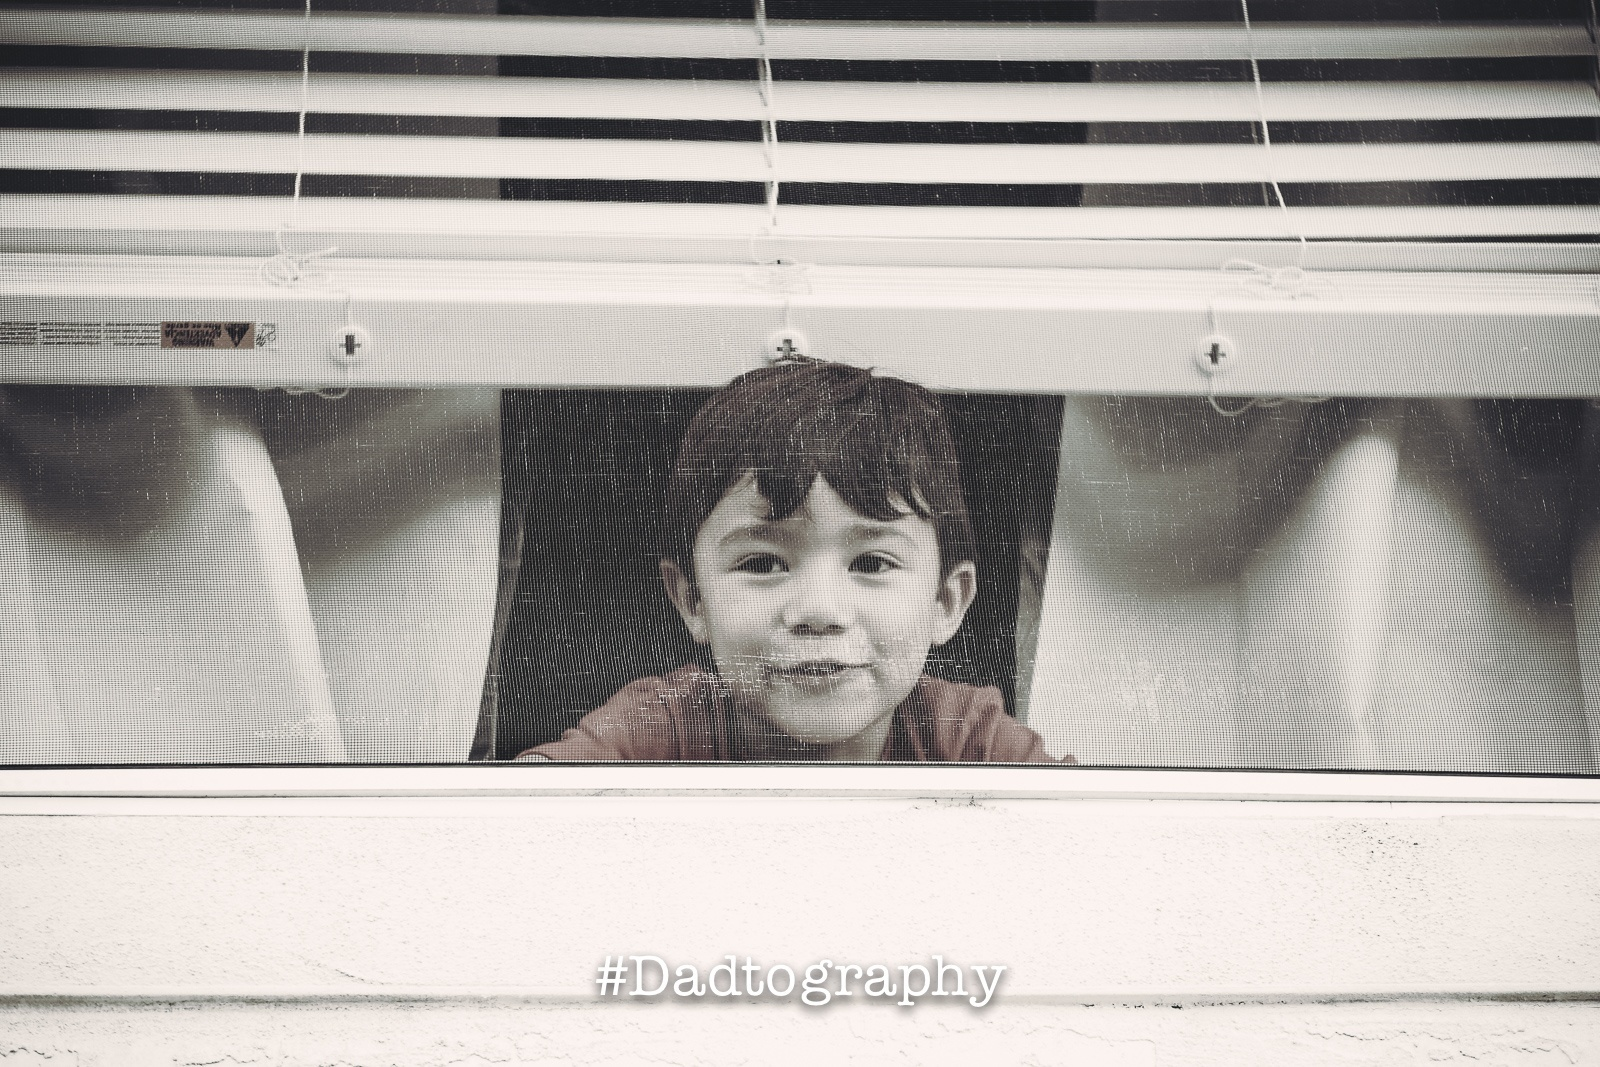 Dear son: live your life with empathy.